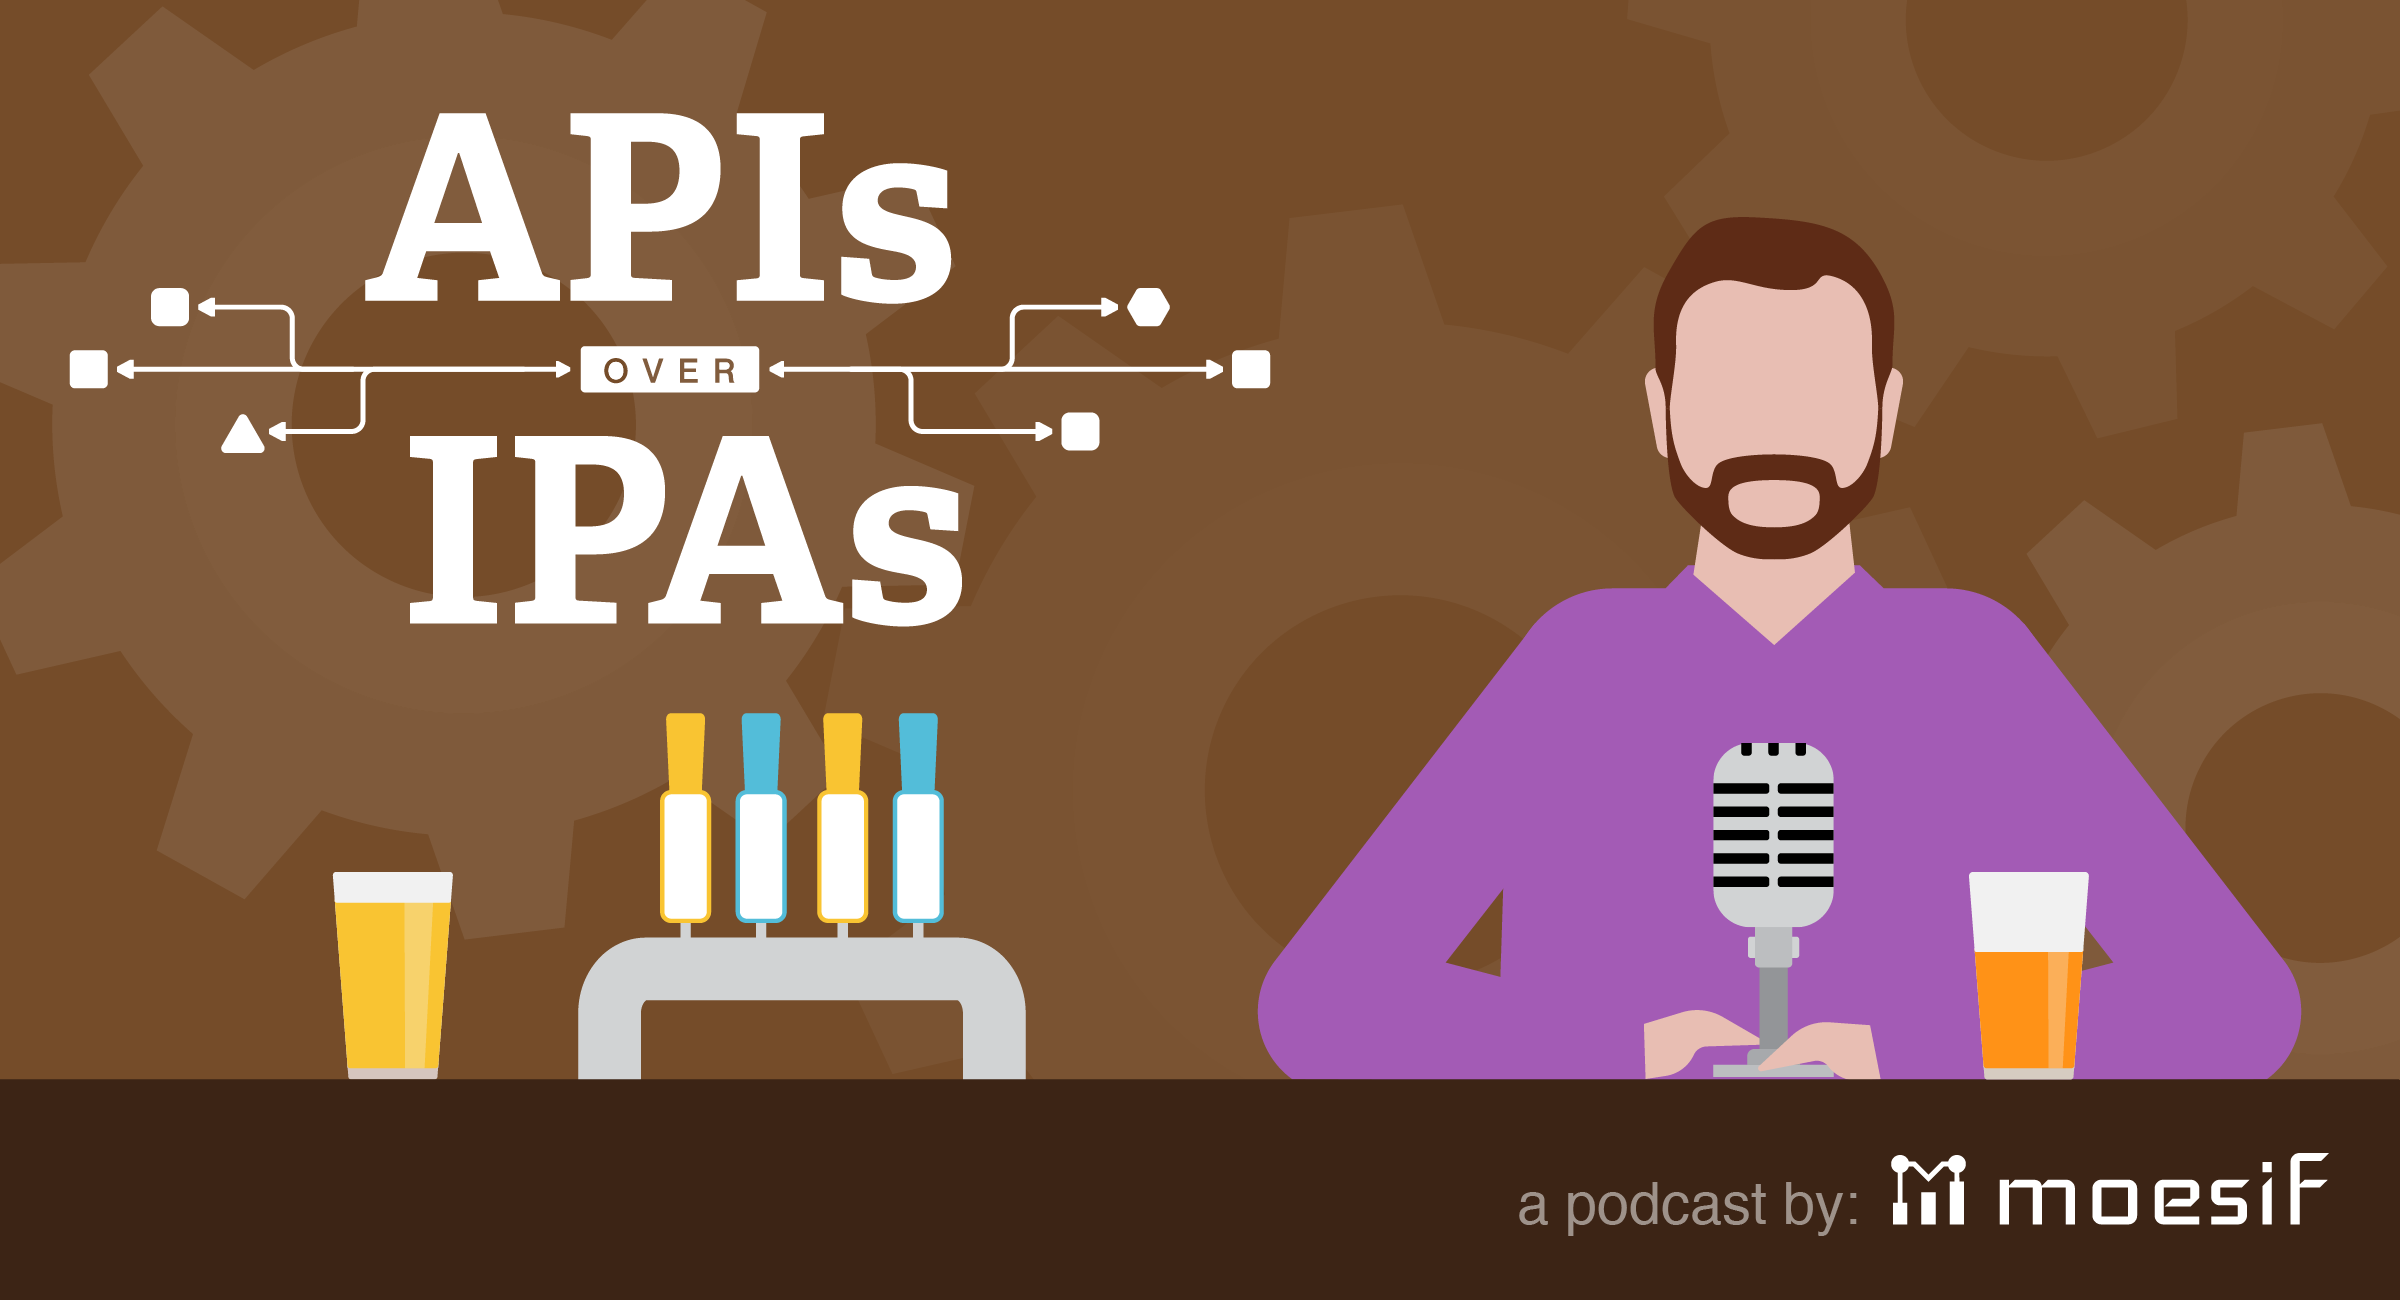 Podcast on How to Build an API-First Company with Nick Patrick, Radar CEO